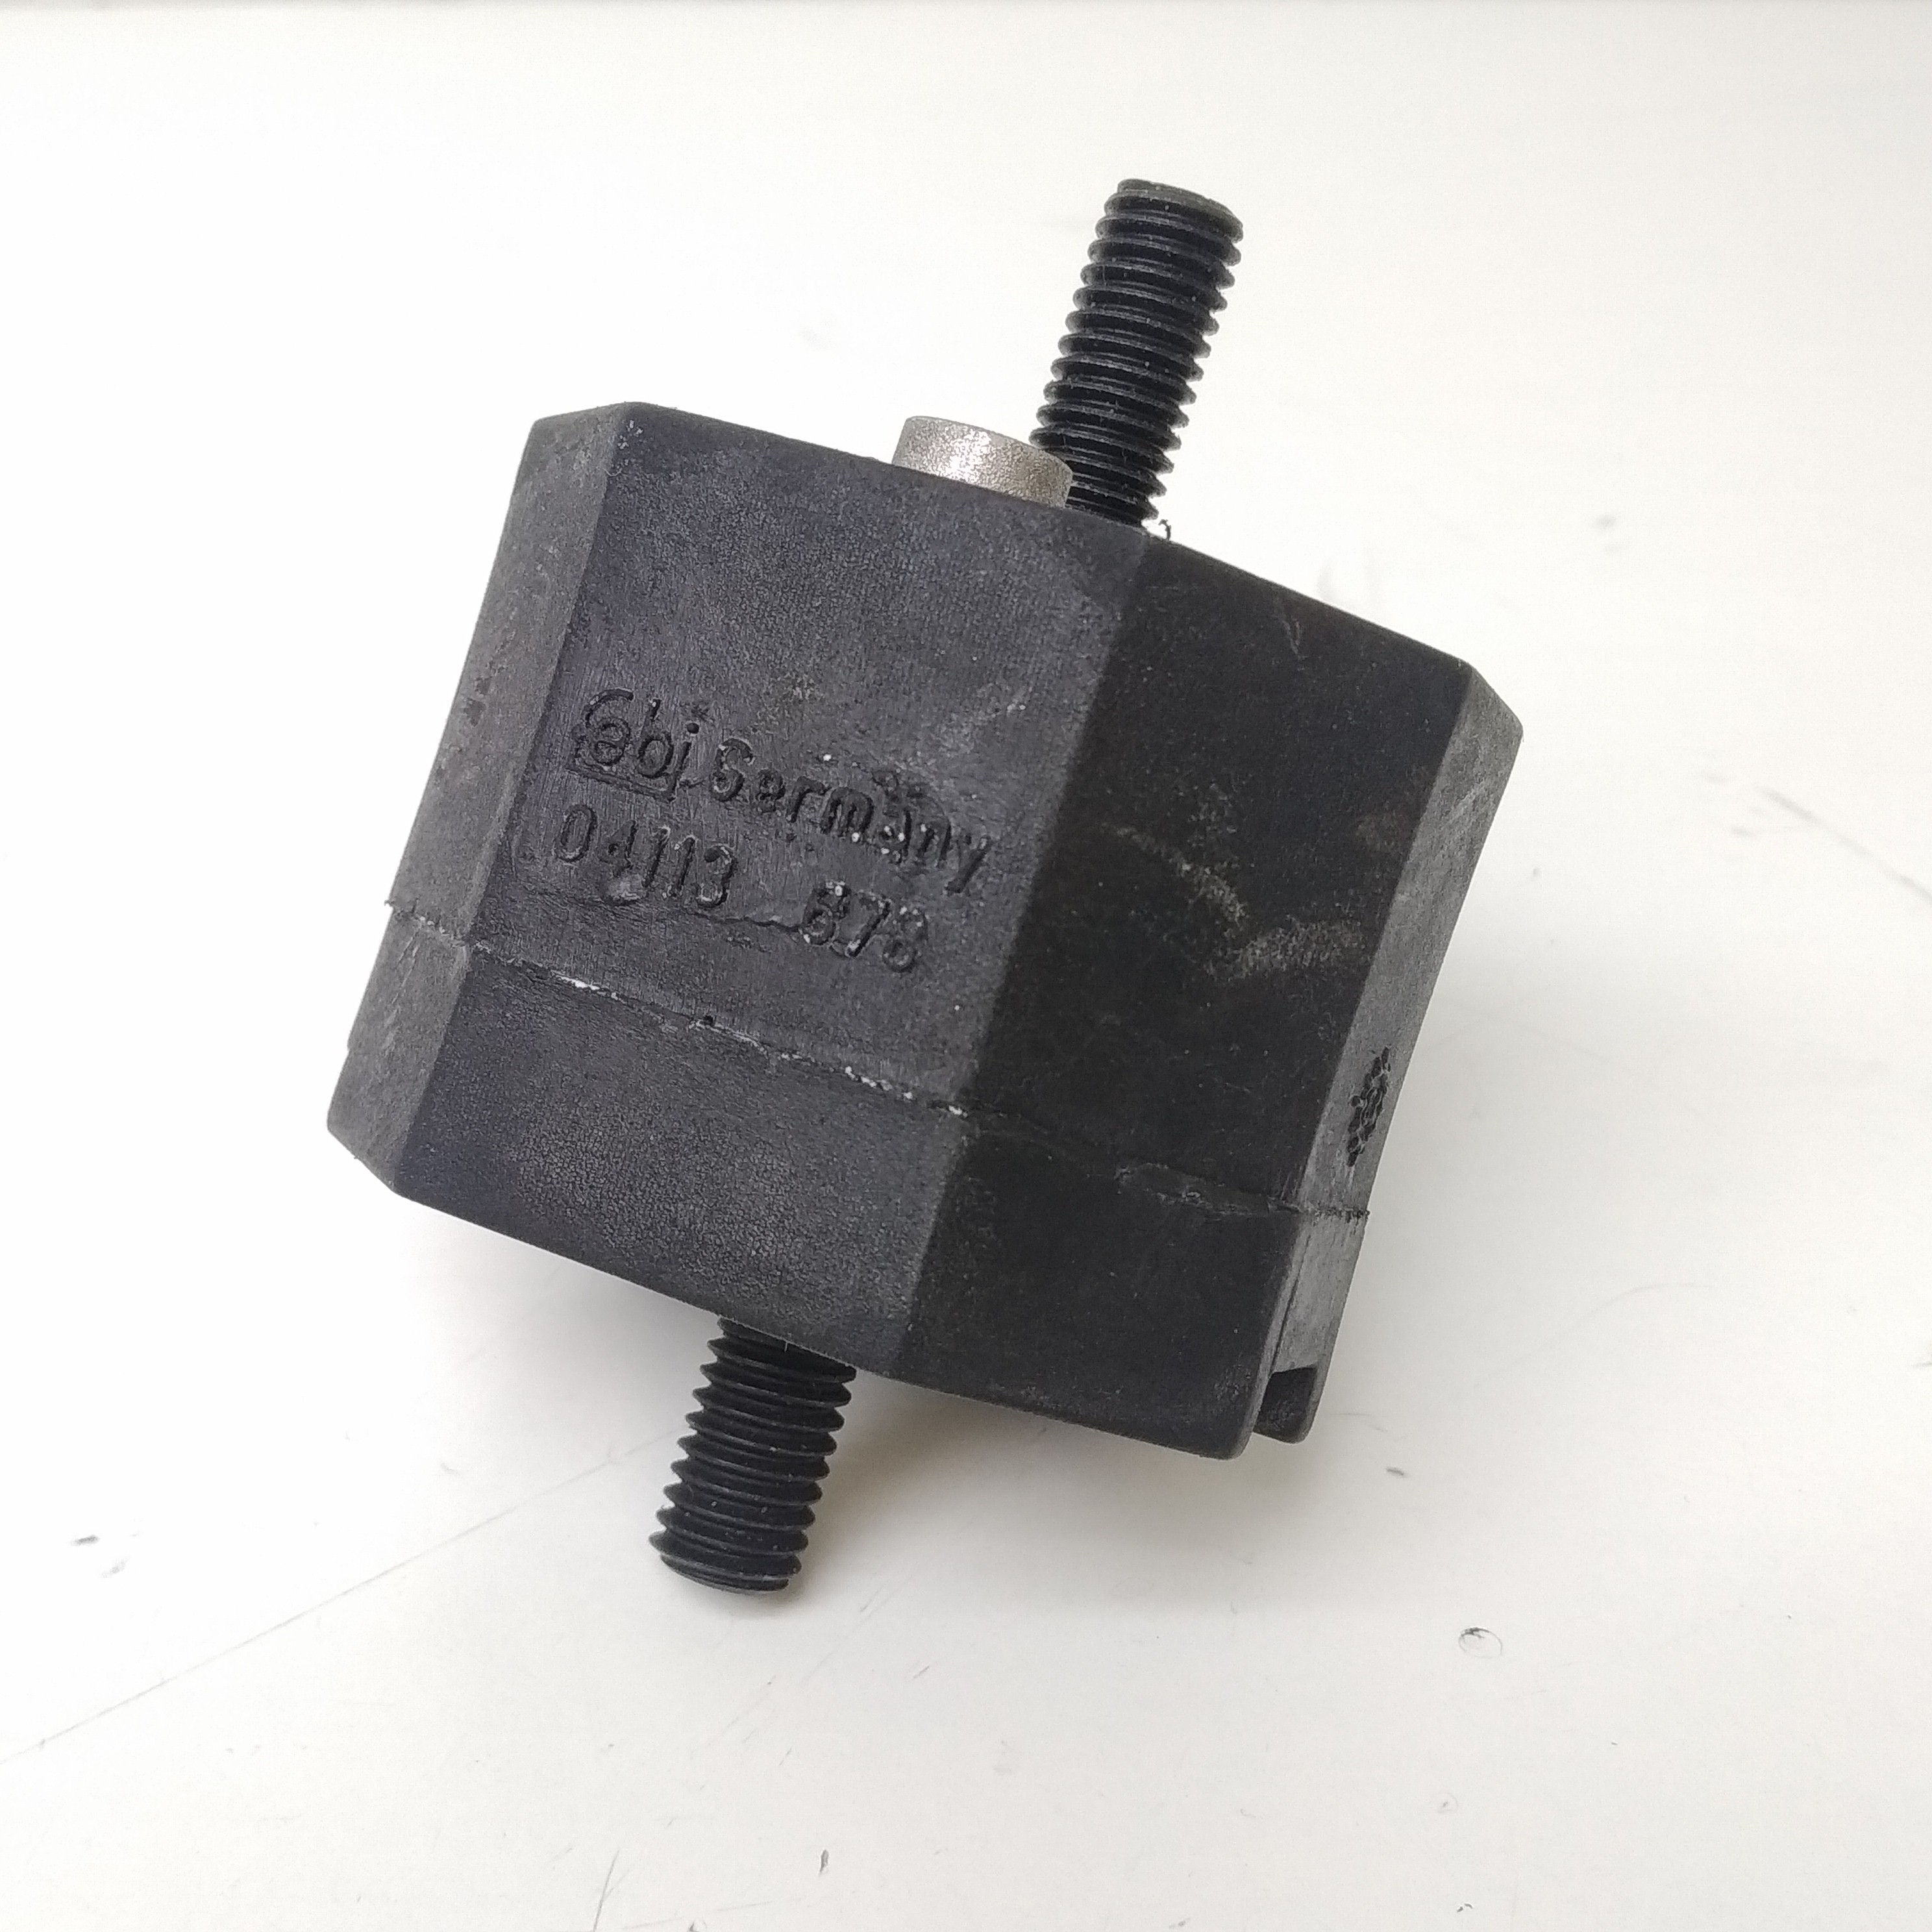 REAR GEARBOX SUPPORT PLUG BMW E30 - E28 - E24 FEBI FOR 23711130400